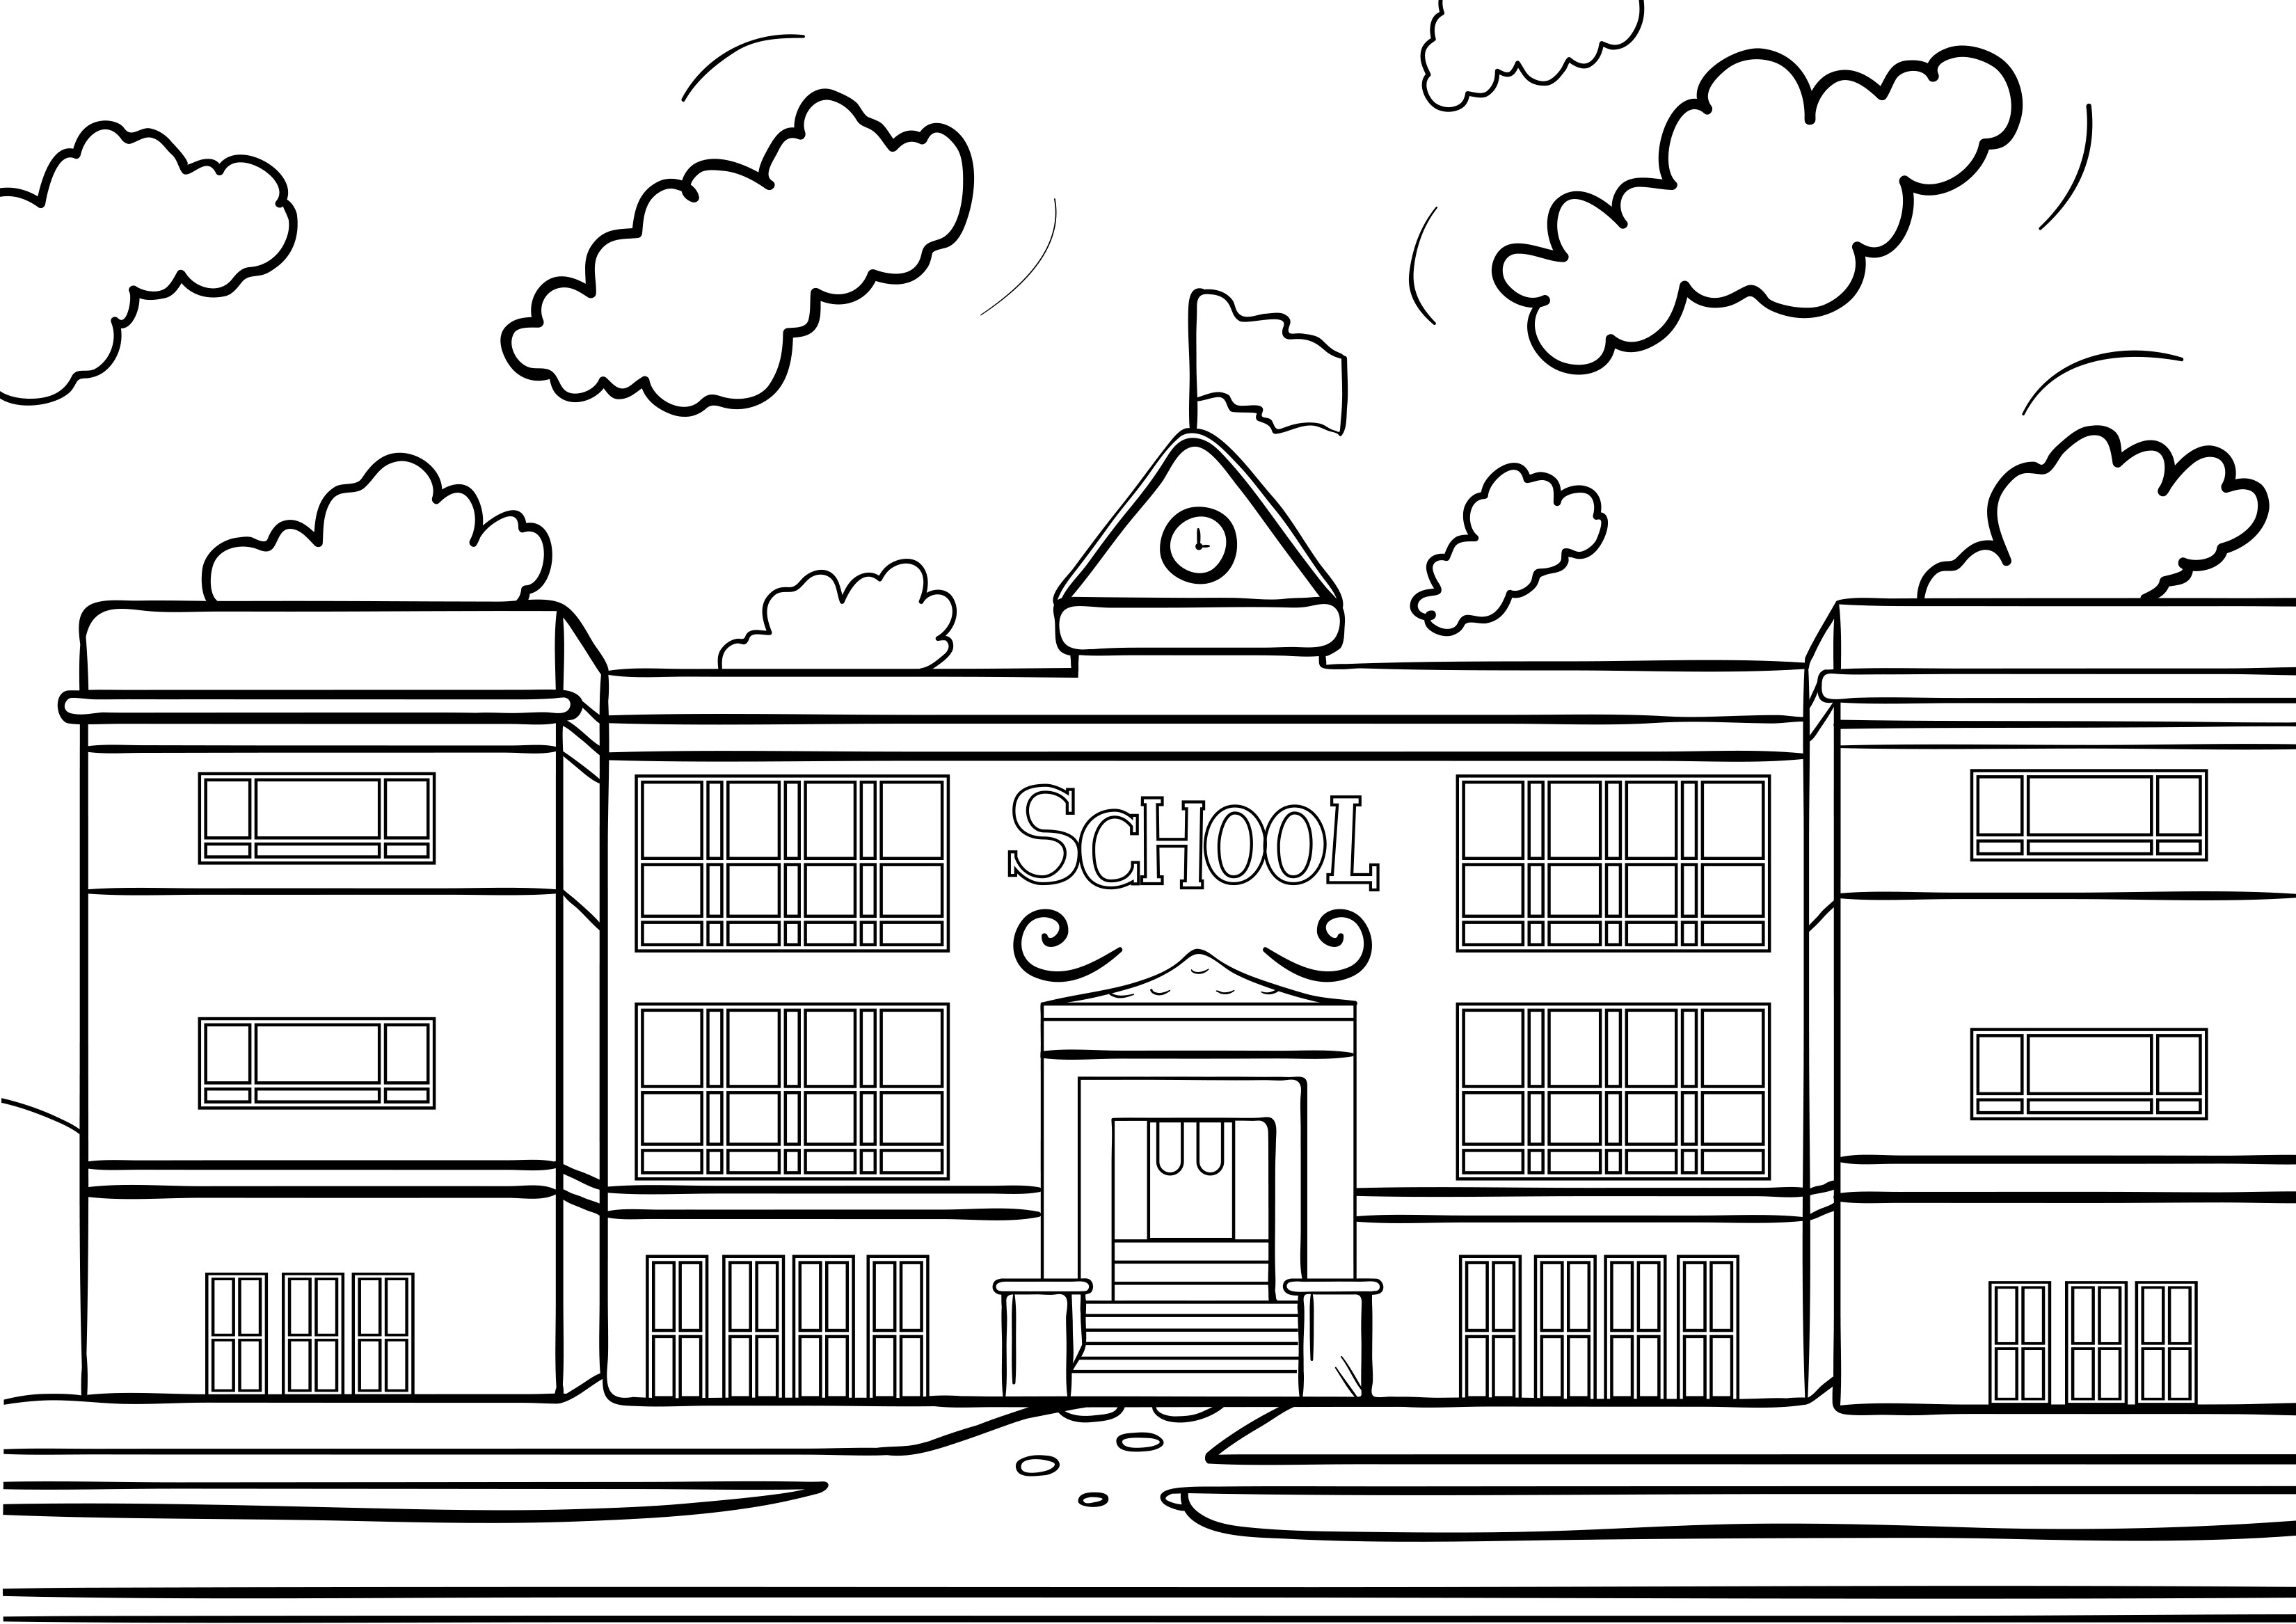 School House Coloring Pages - School House Coloring Pages to Print